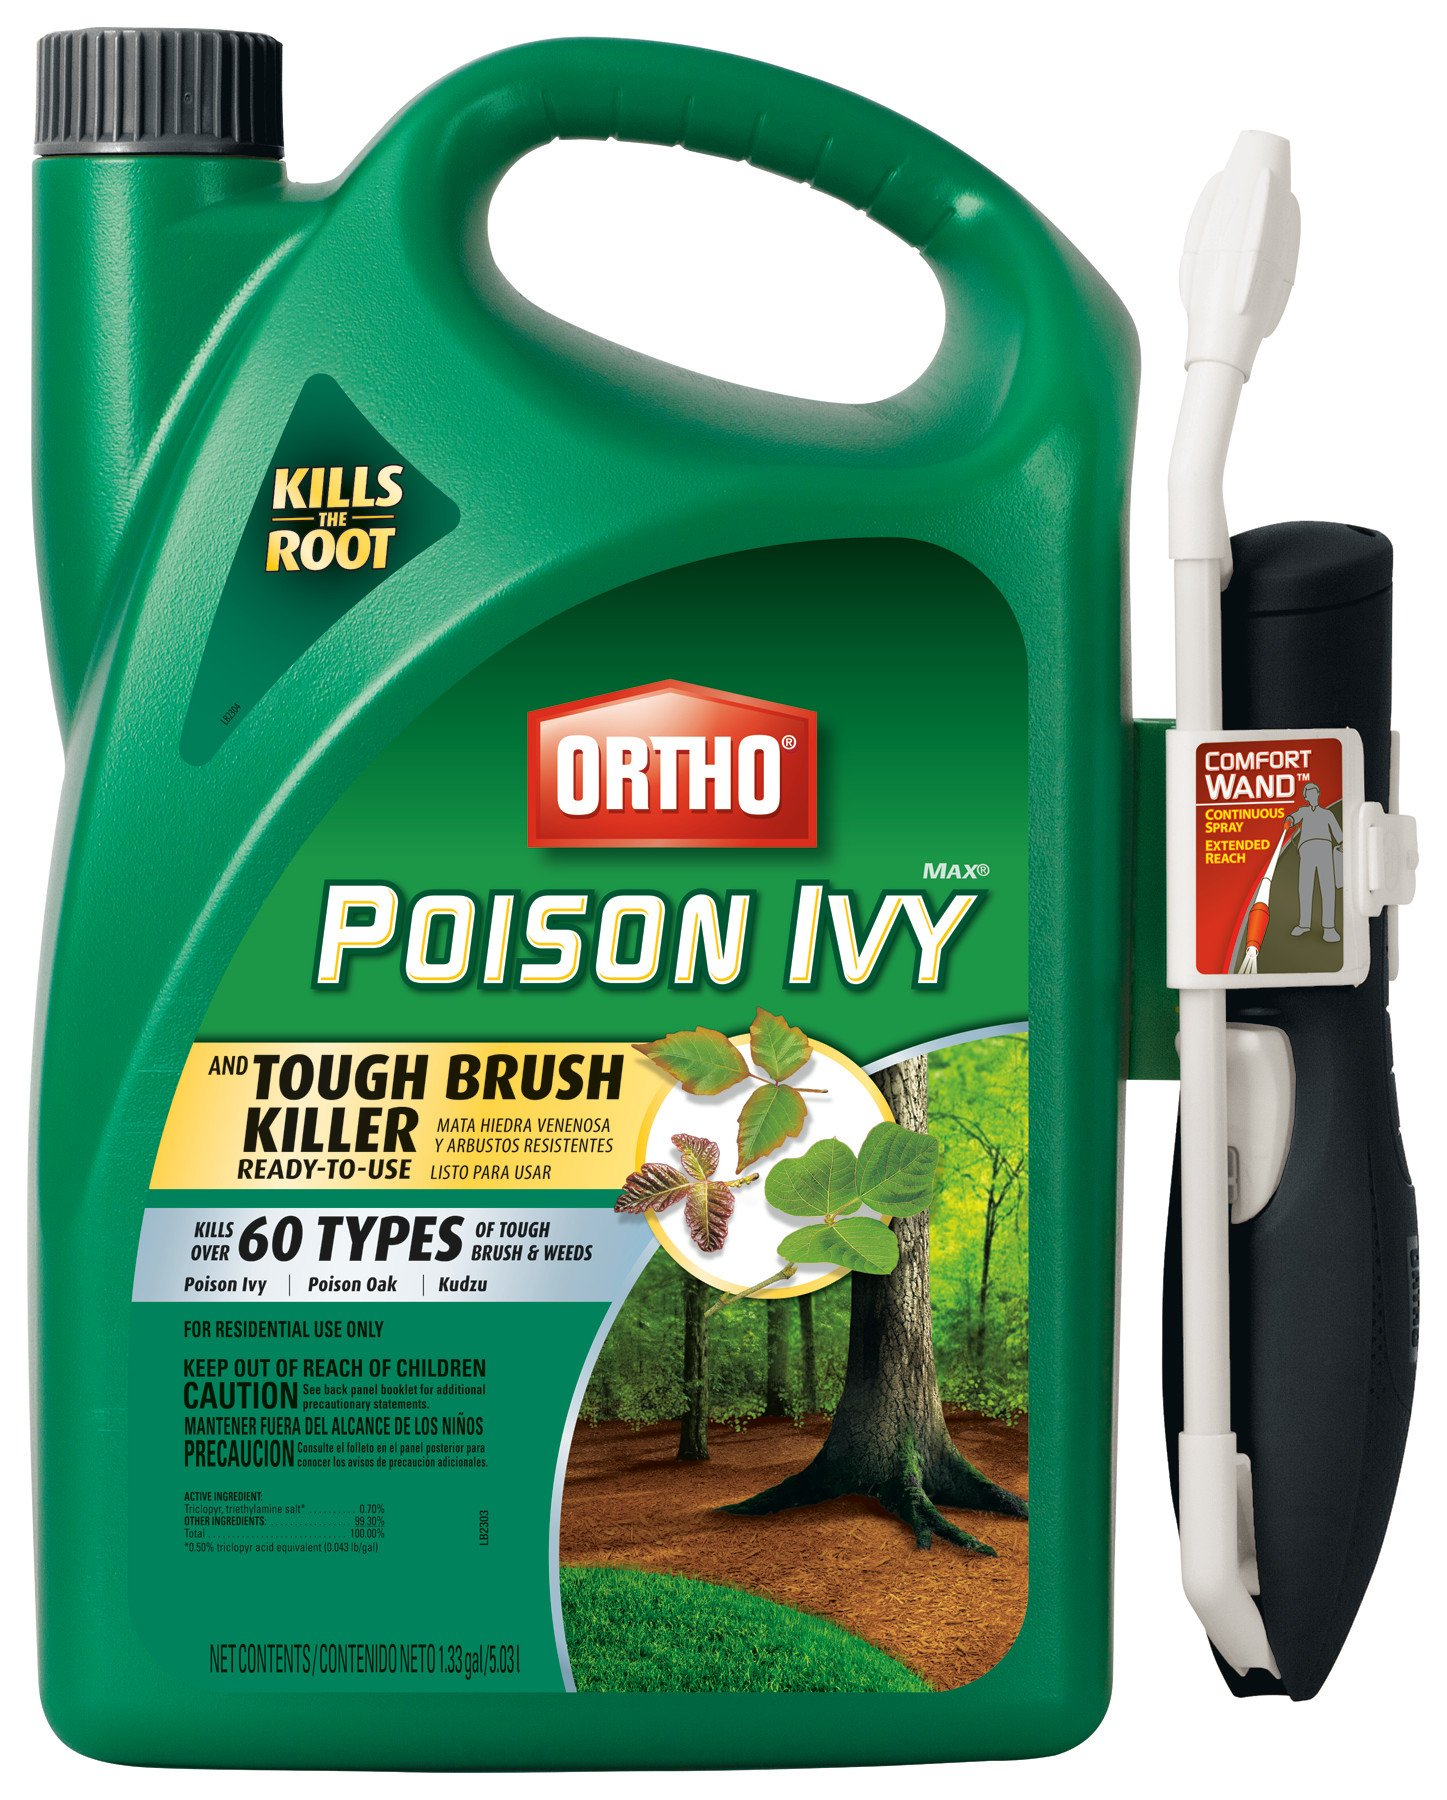 Ortho MAX Poison Ivy & Tough Brush Killer Ready-To-Use with Comfort Wand, 1.33-Gallon by Ortho